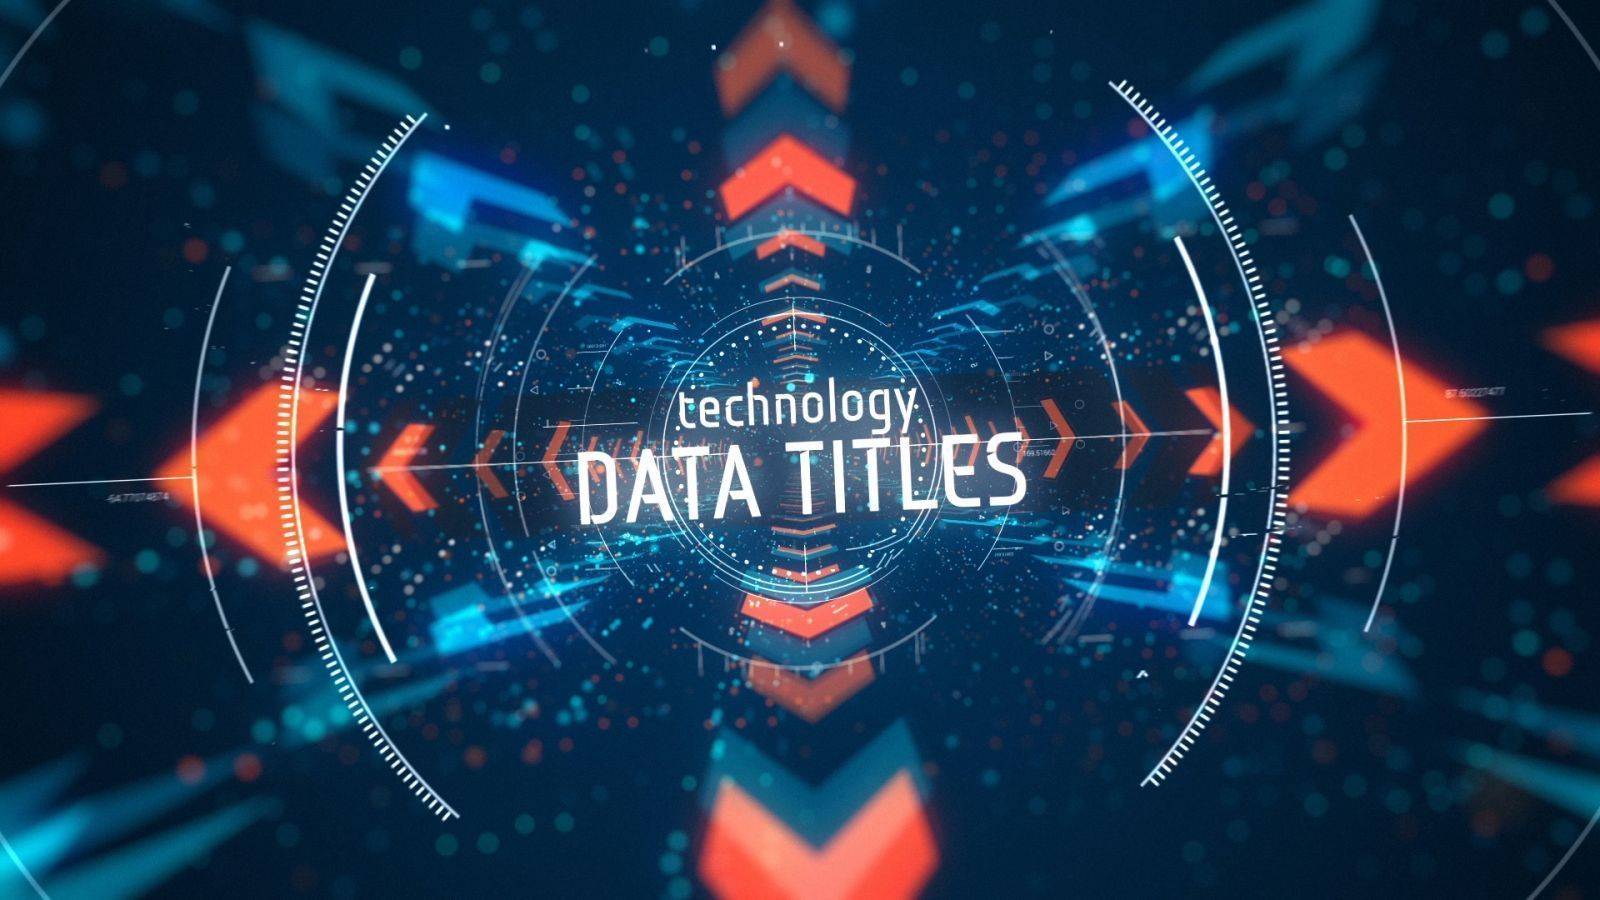 Technology Data Titles